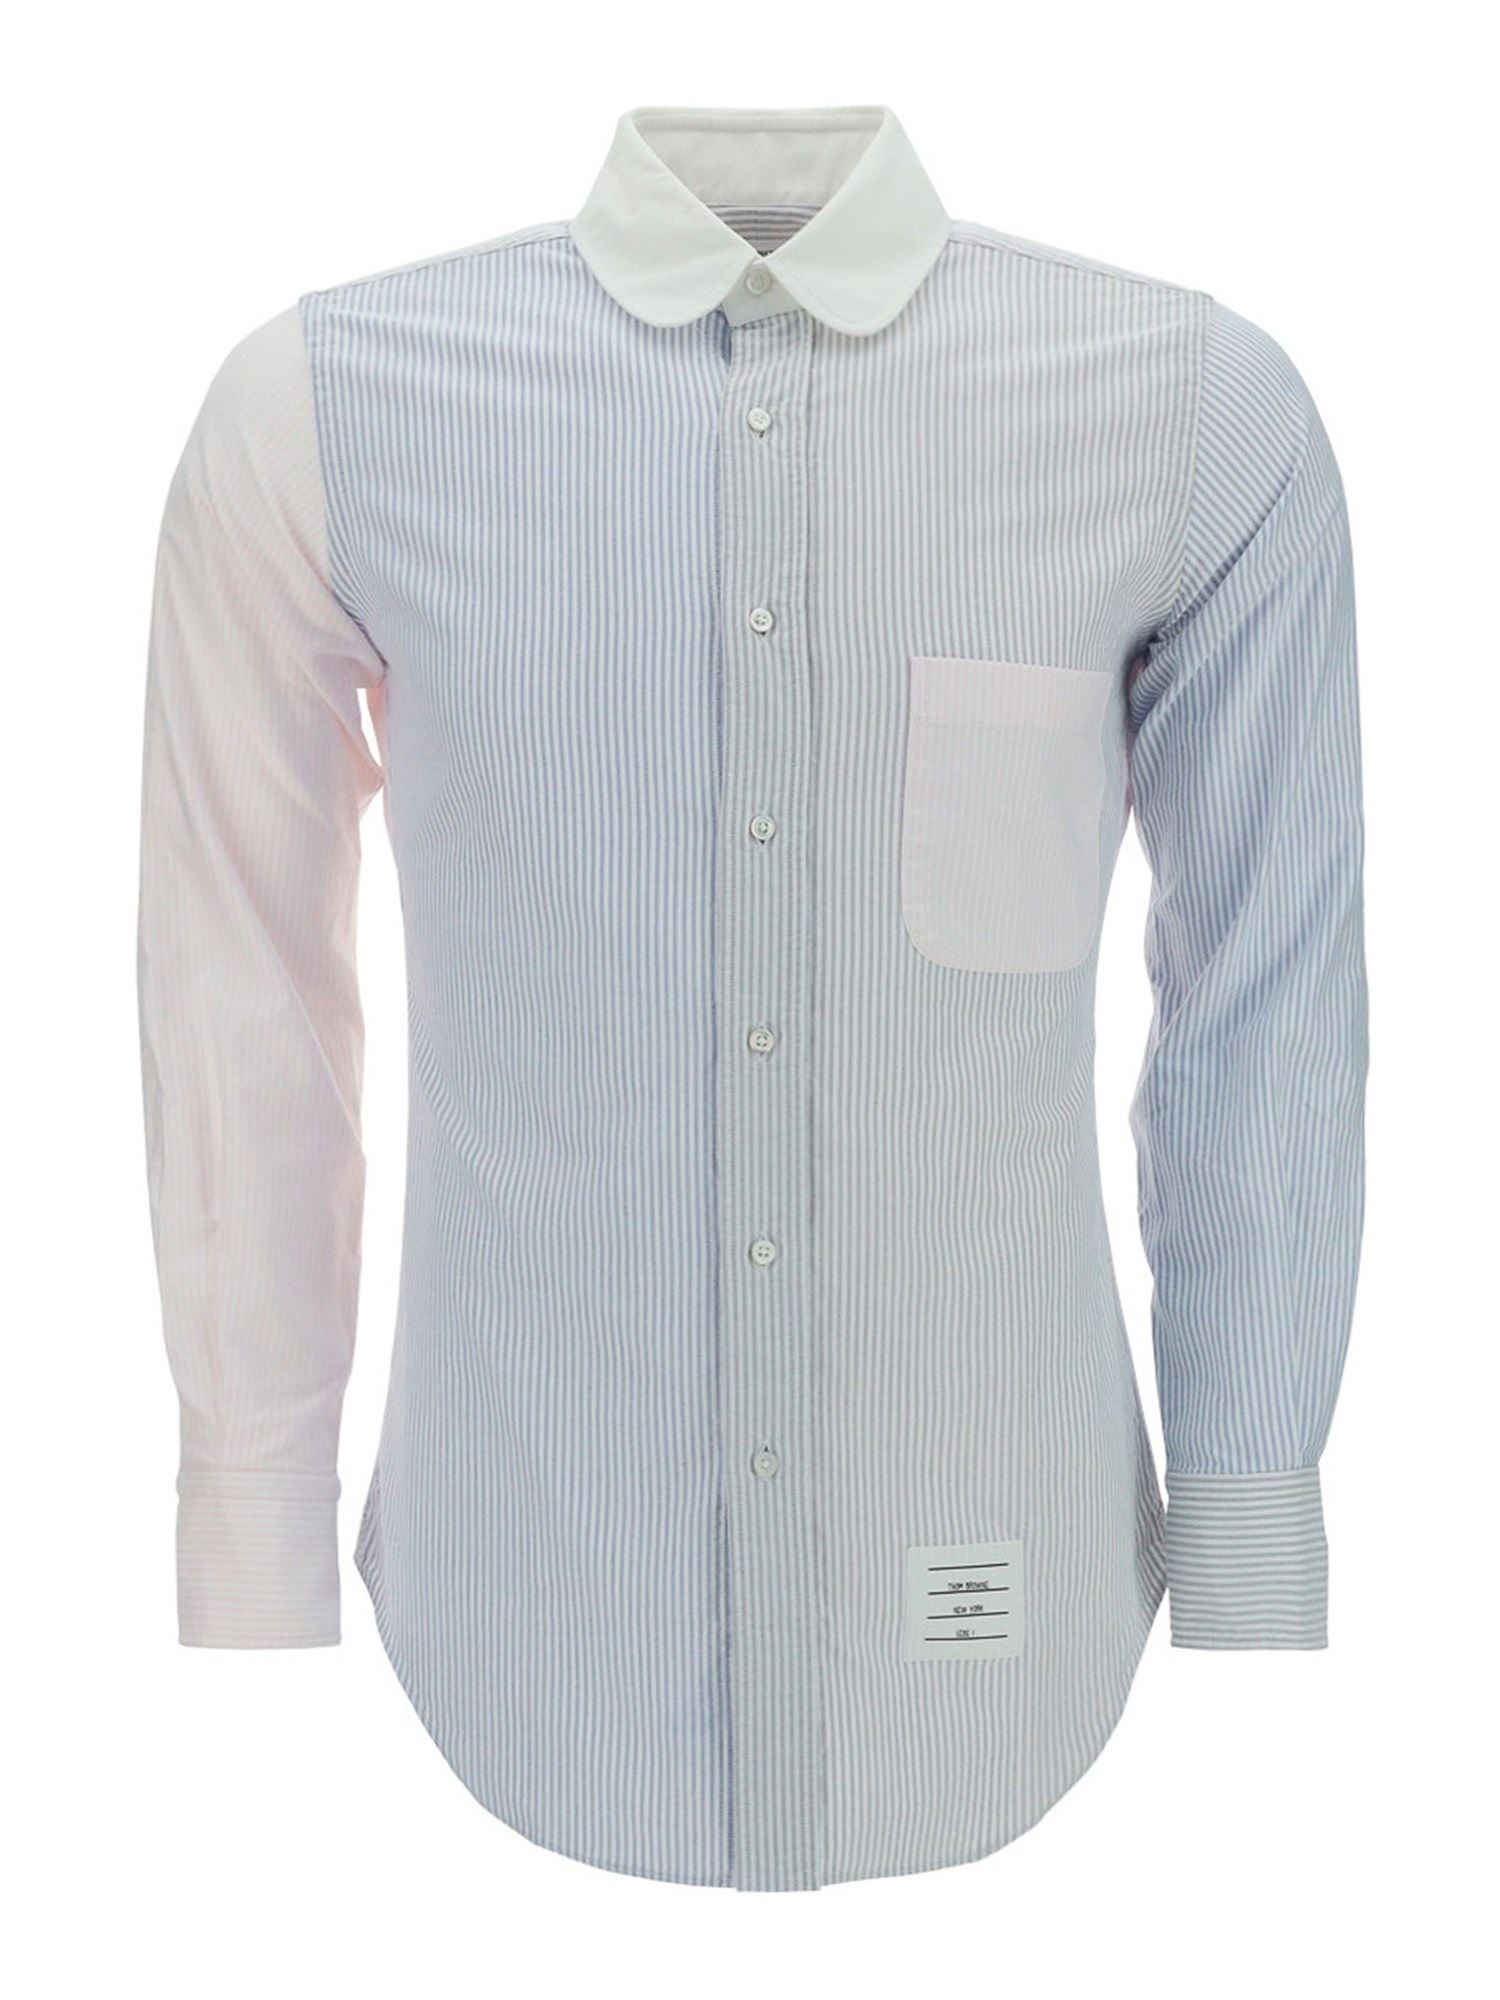 Thom Browne Cottons PATCHWORK SHIRT IN LIGHT BLUE